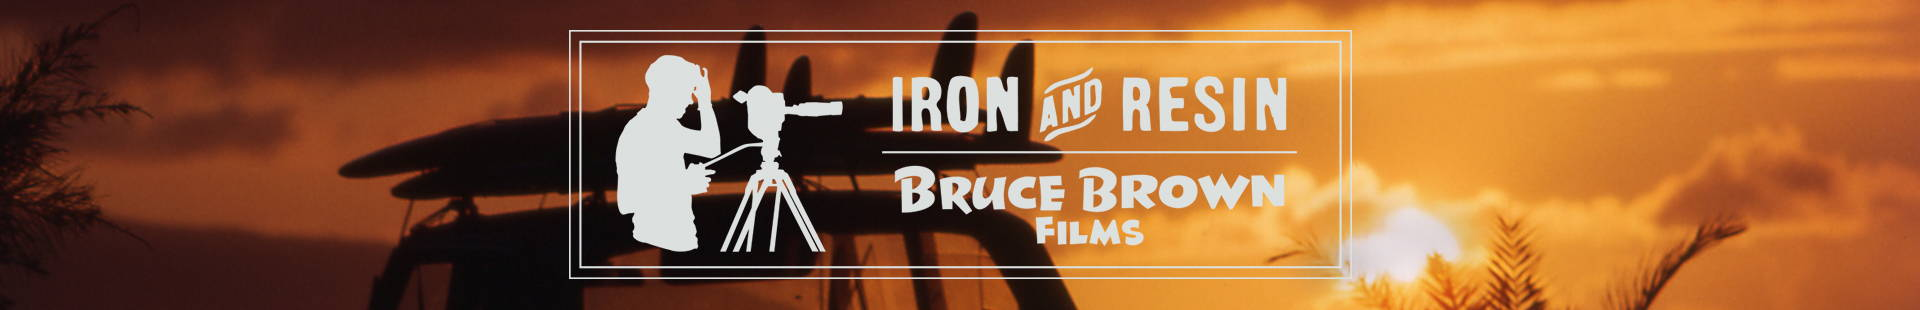 Iron & Resin X Bruce Brown Films Product Collection